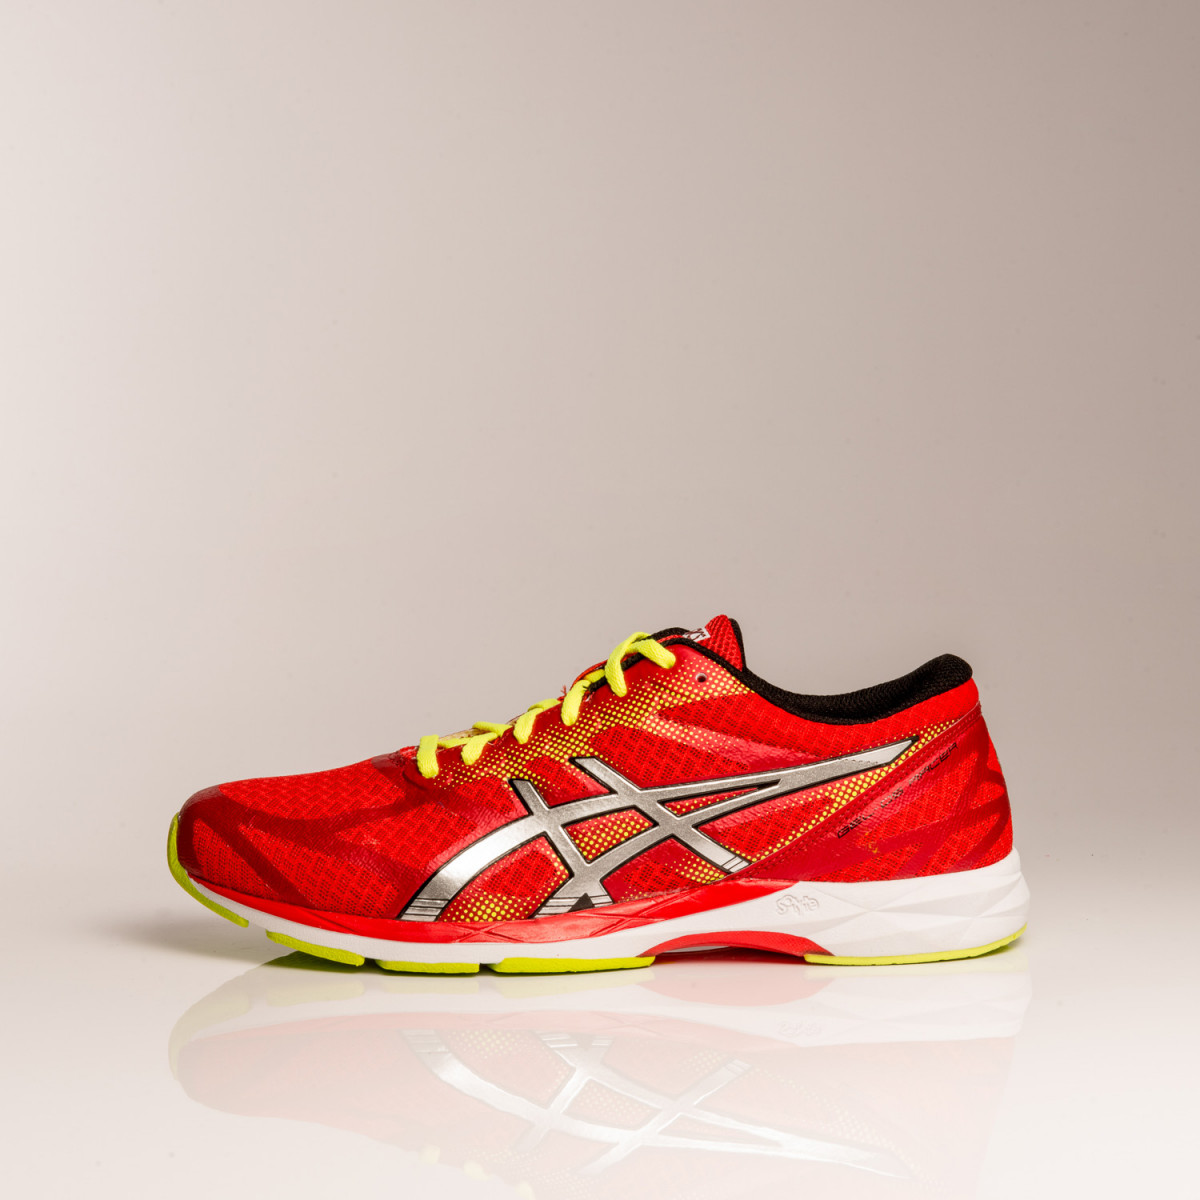 ZAPATILLAS ASICS GEL DS RACER 10